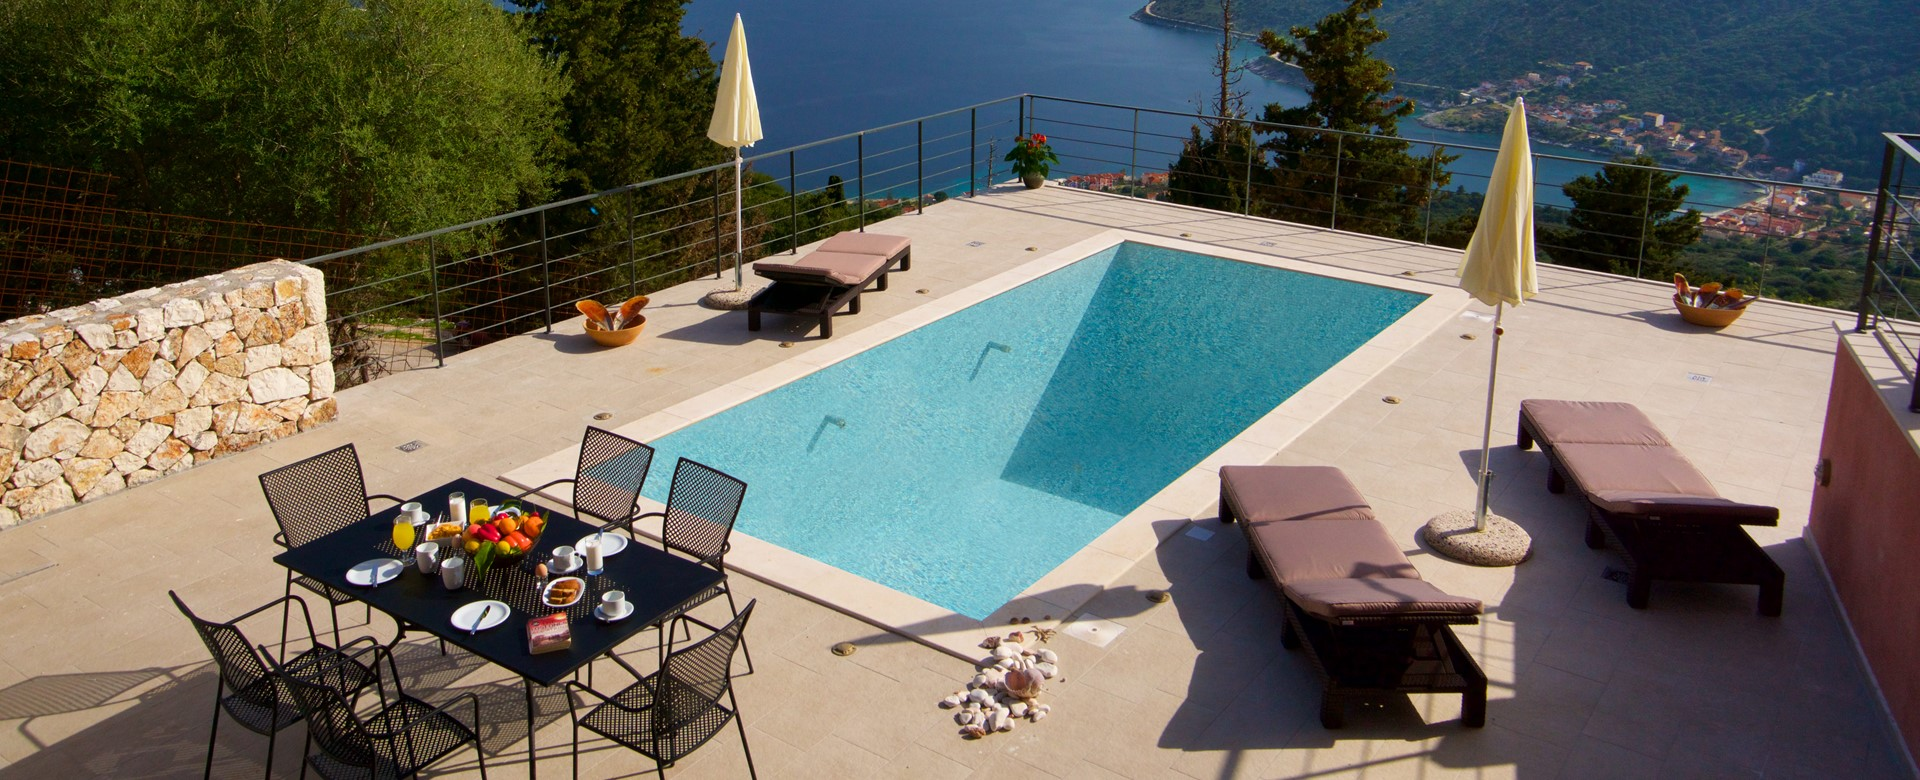 Outside dining, pool, sun beds and views outside Villa Amore, Agia Efimia, Kefalonia, Greek Islands